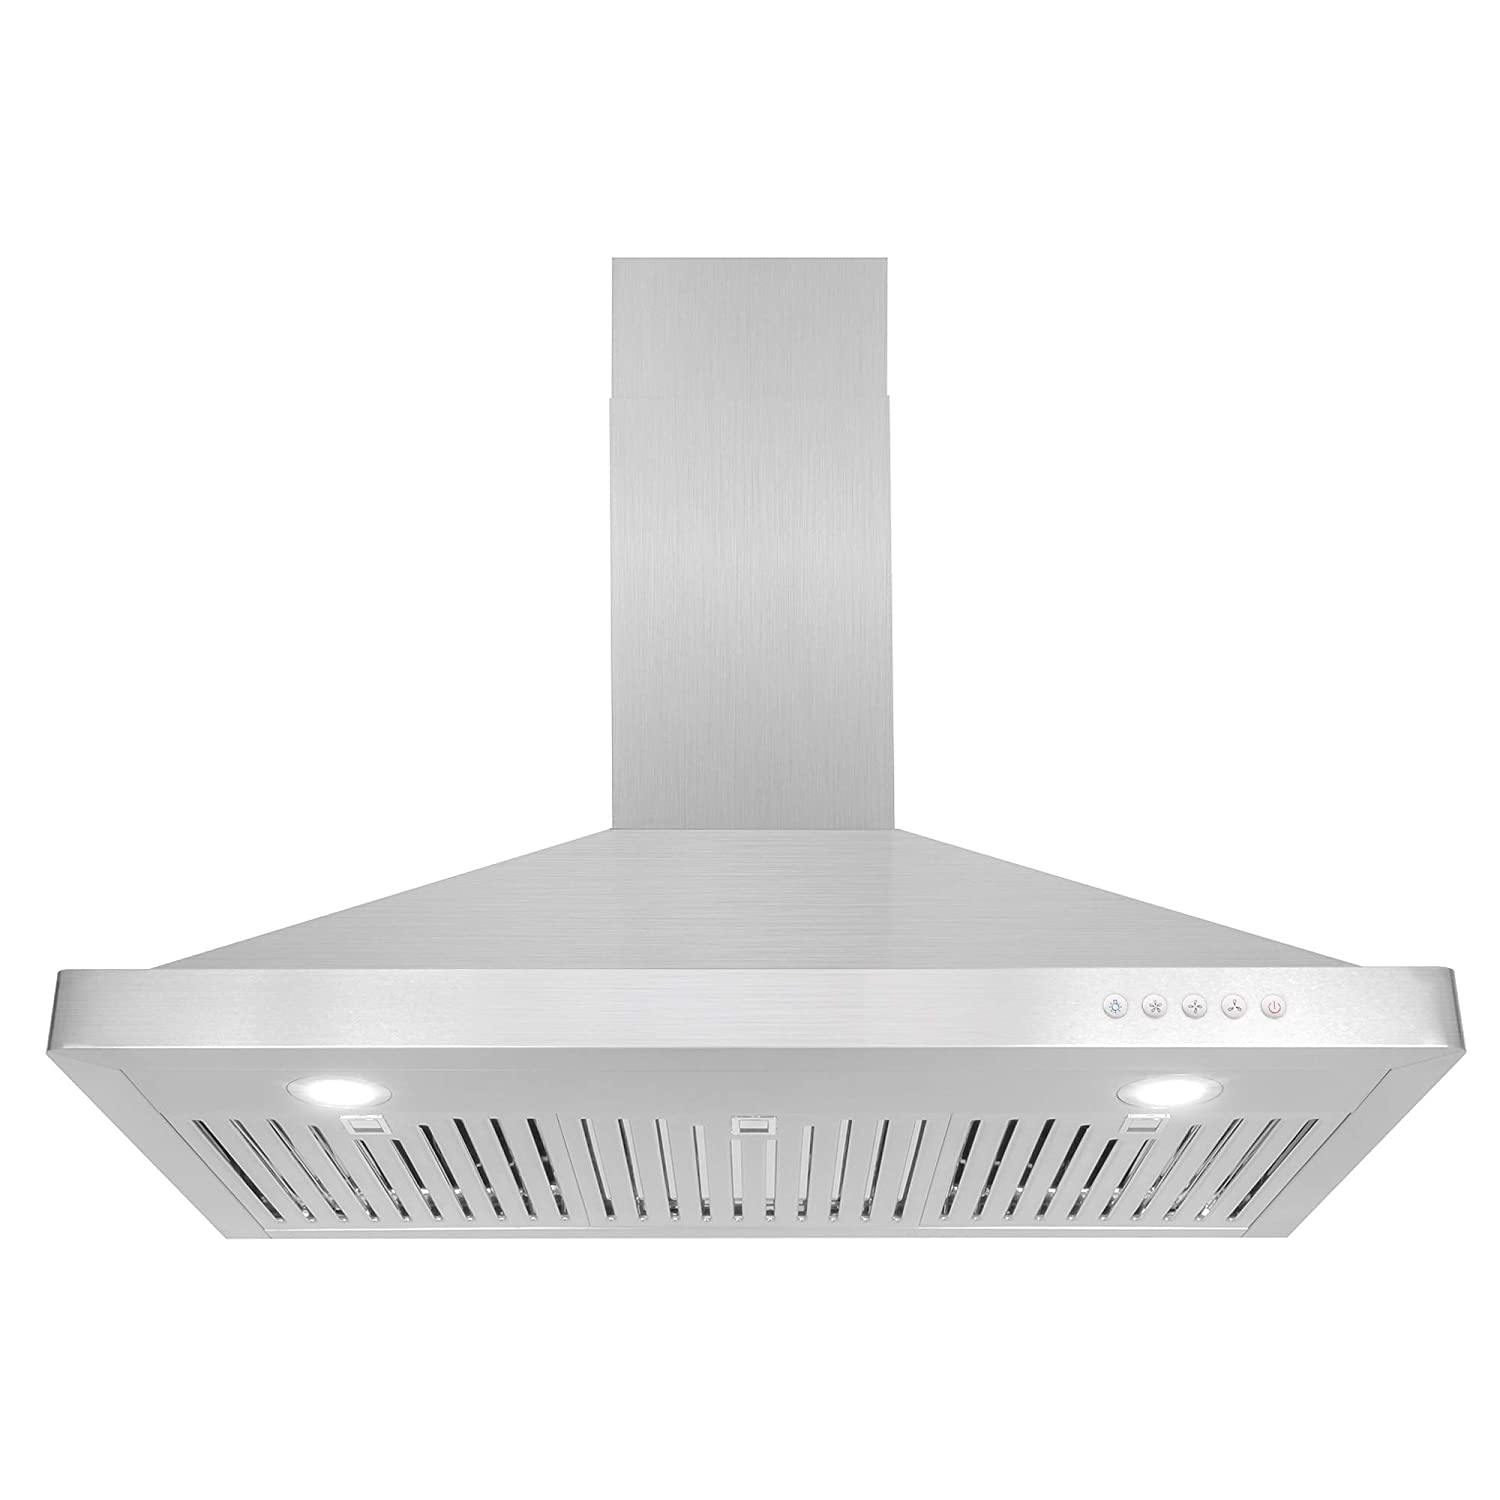 Cosmo 63190 36-in Wall-Mount Range Hood 760-CFM | Ducted / Ductless Convertible Duct , Ceiling Chimney Kitchen Stove Vent with LED Light , 3 Speed Exhaust Fan , Permanent Filter ( Stainless Steel )